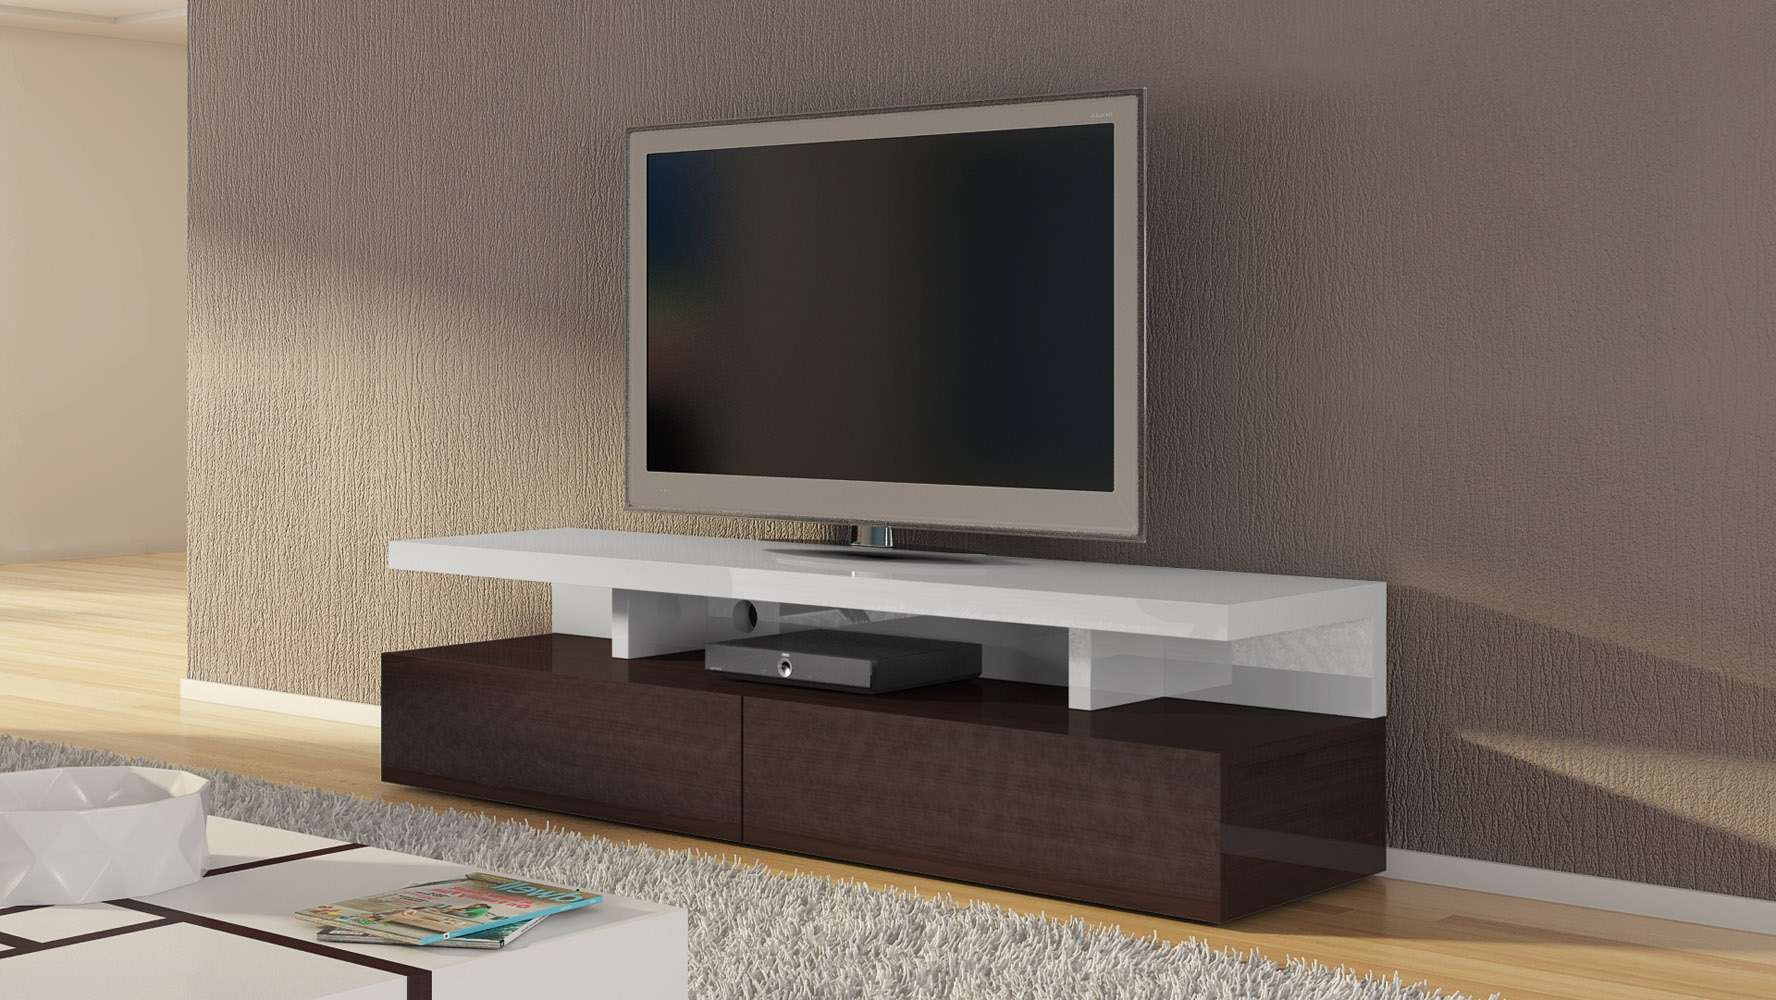 Dark Wood And White High Gloss Lacquer Mcintosh 71 Inch Tv Stand Inside High Gloss White Tv Stands (View 5 of 15)